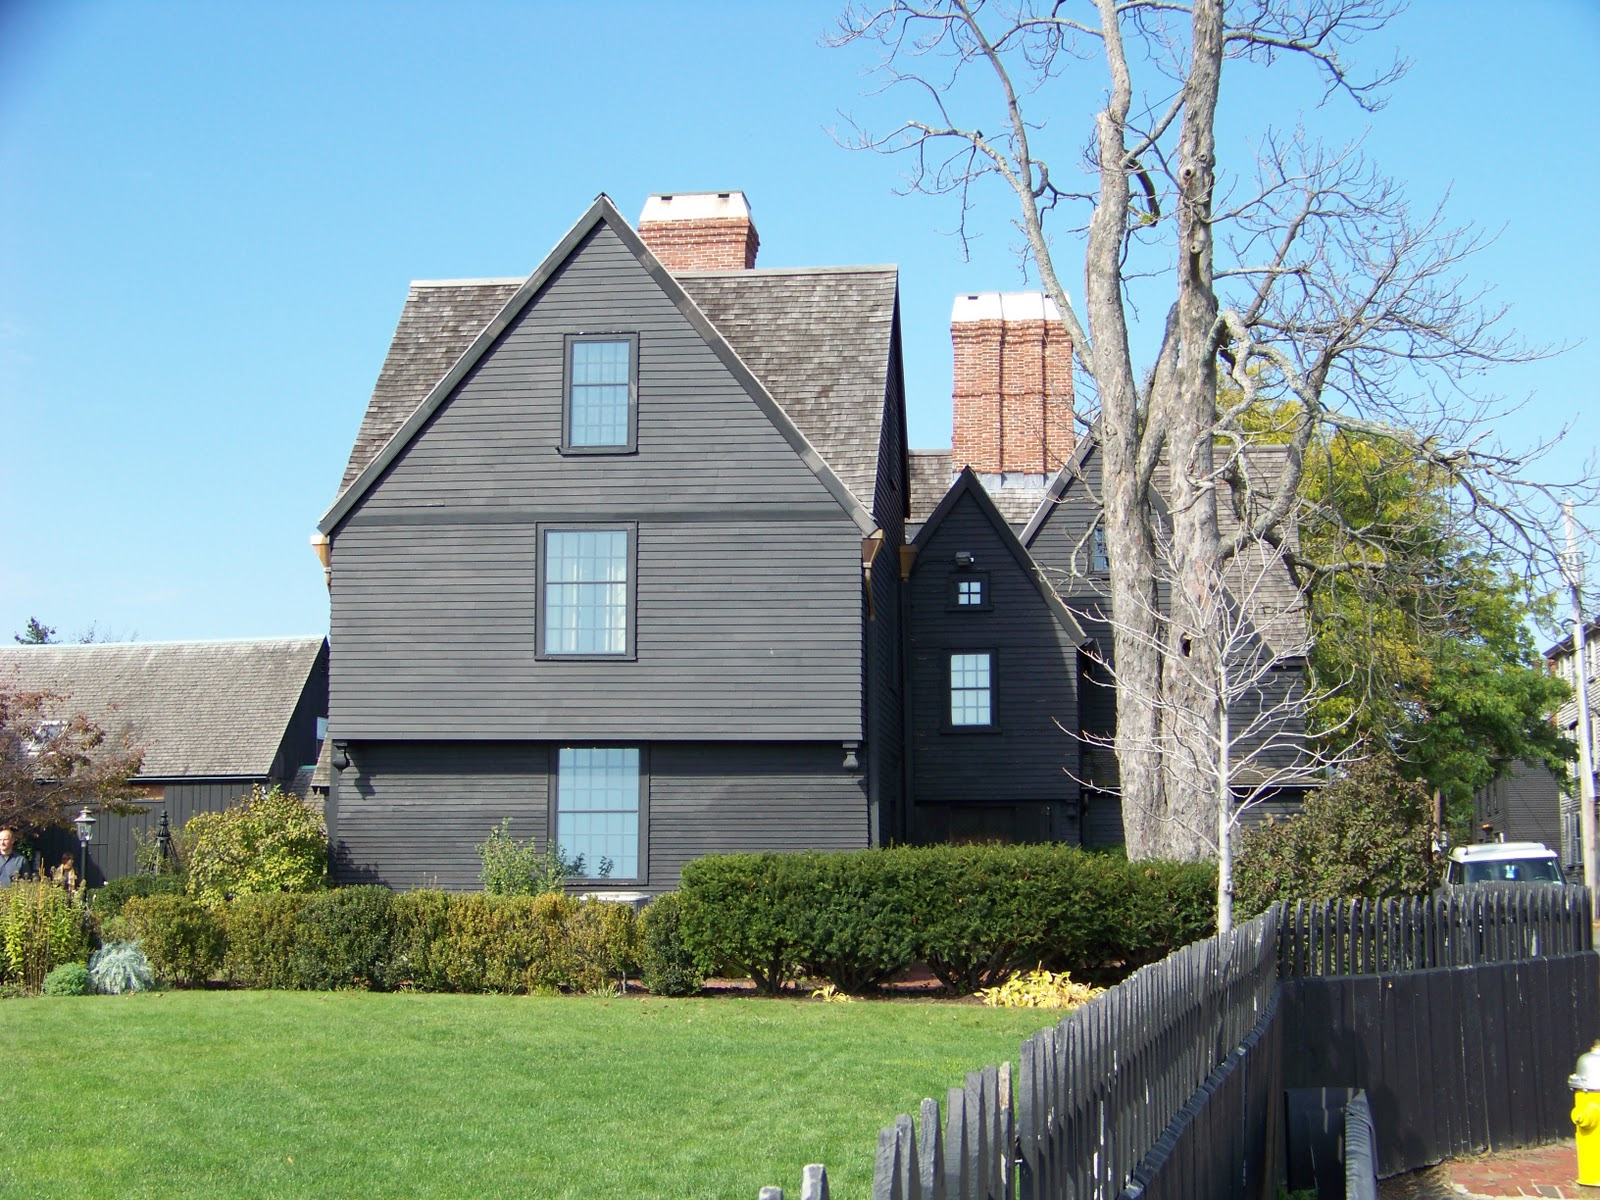 house of seven gables thesis statements